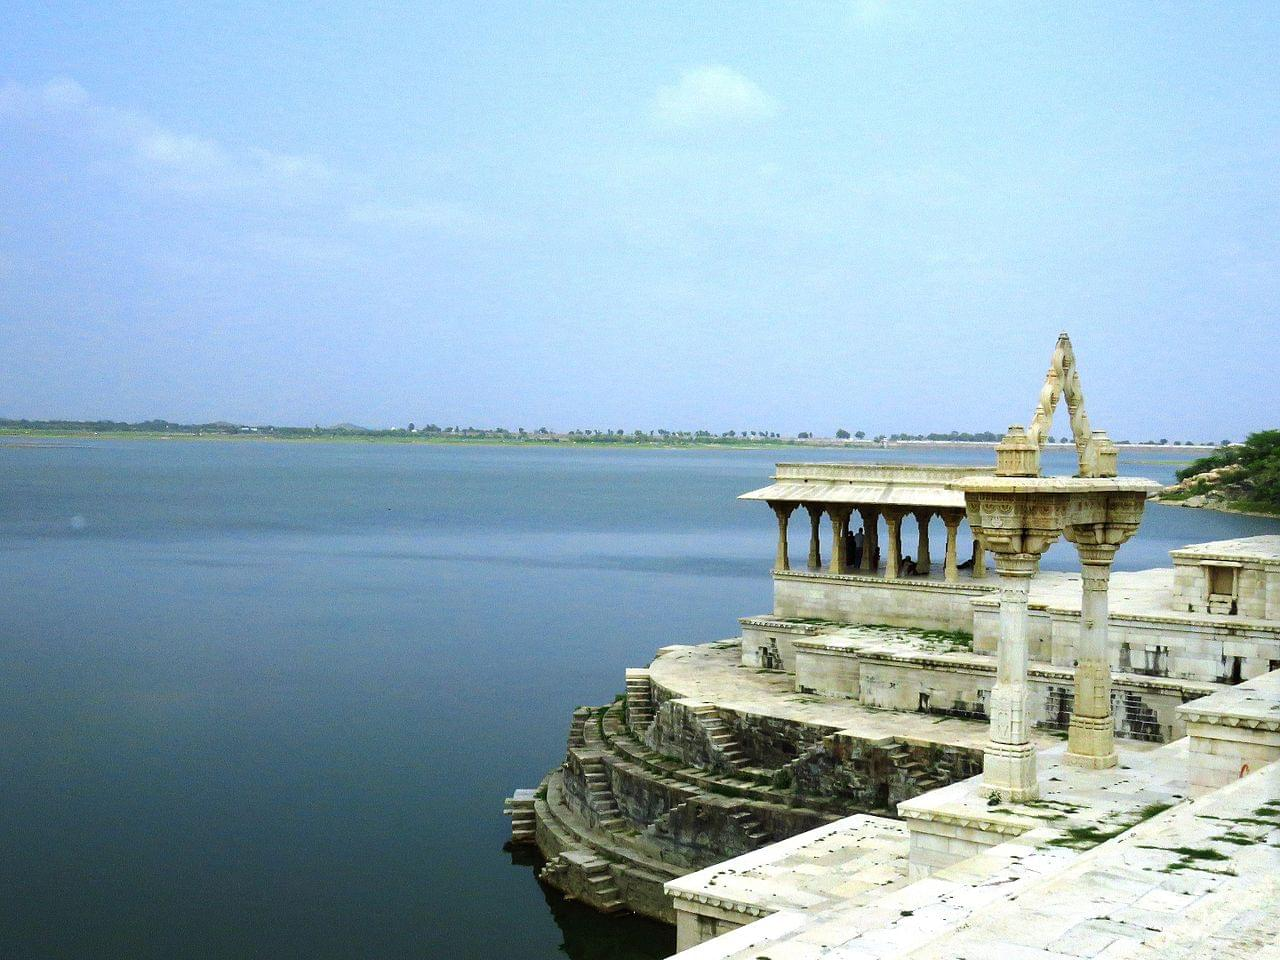 Excuisiting-Ranakapur-and-Kumbhalgarh-fort-with-Udaipur-Tour-Package-JustWravel-1597390878-6.jpg